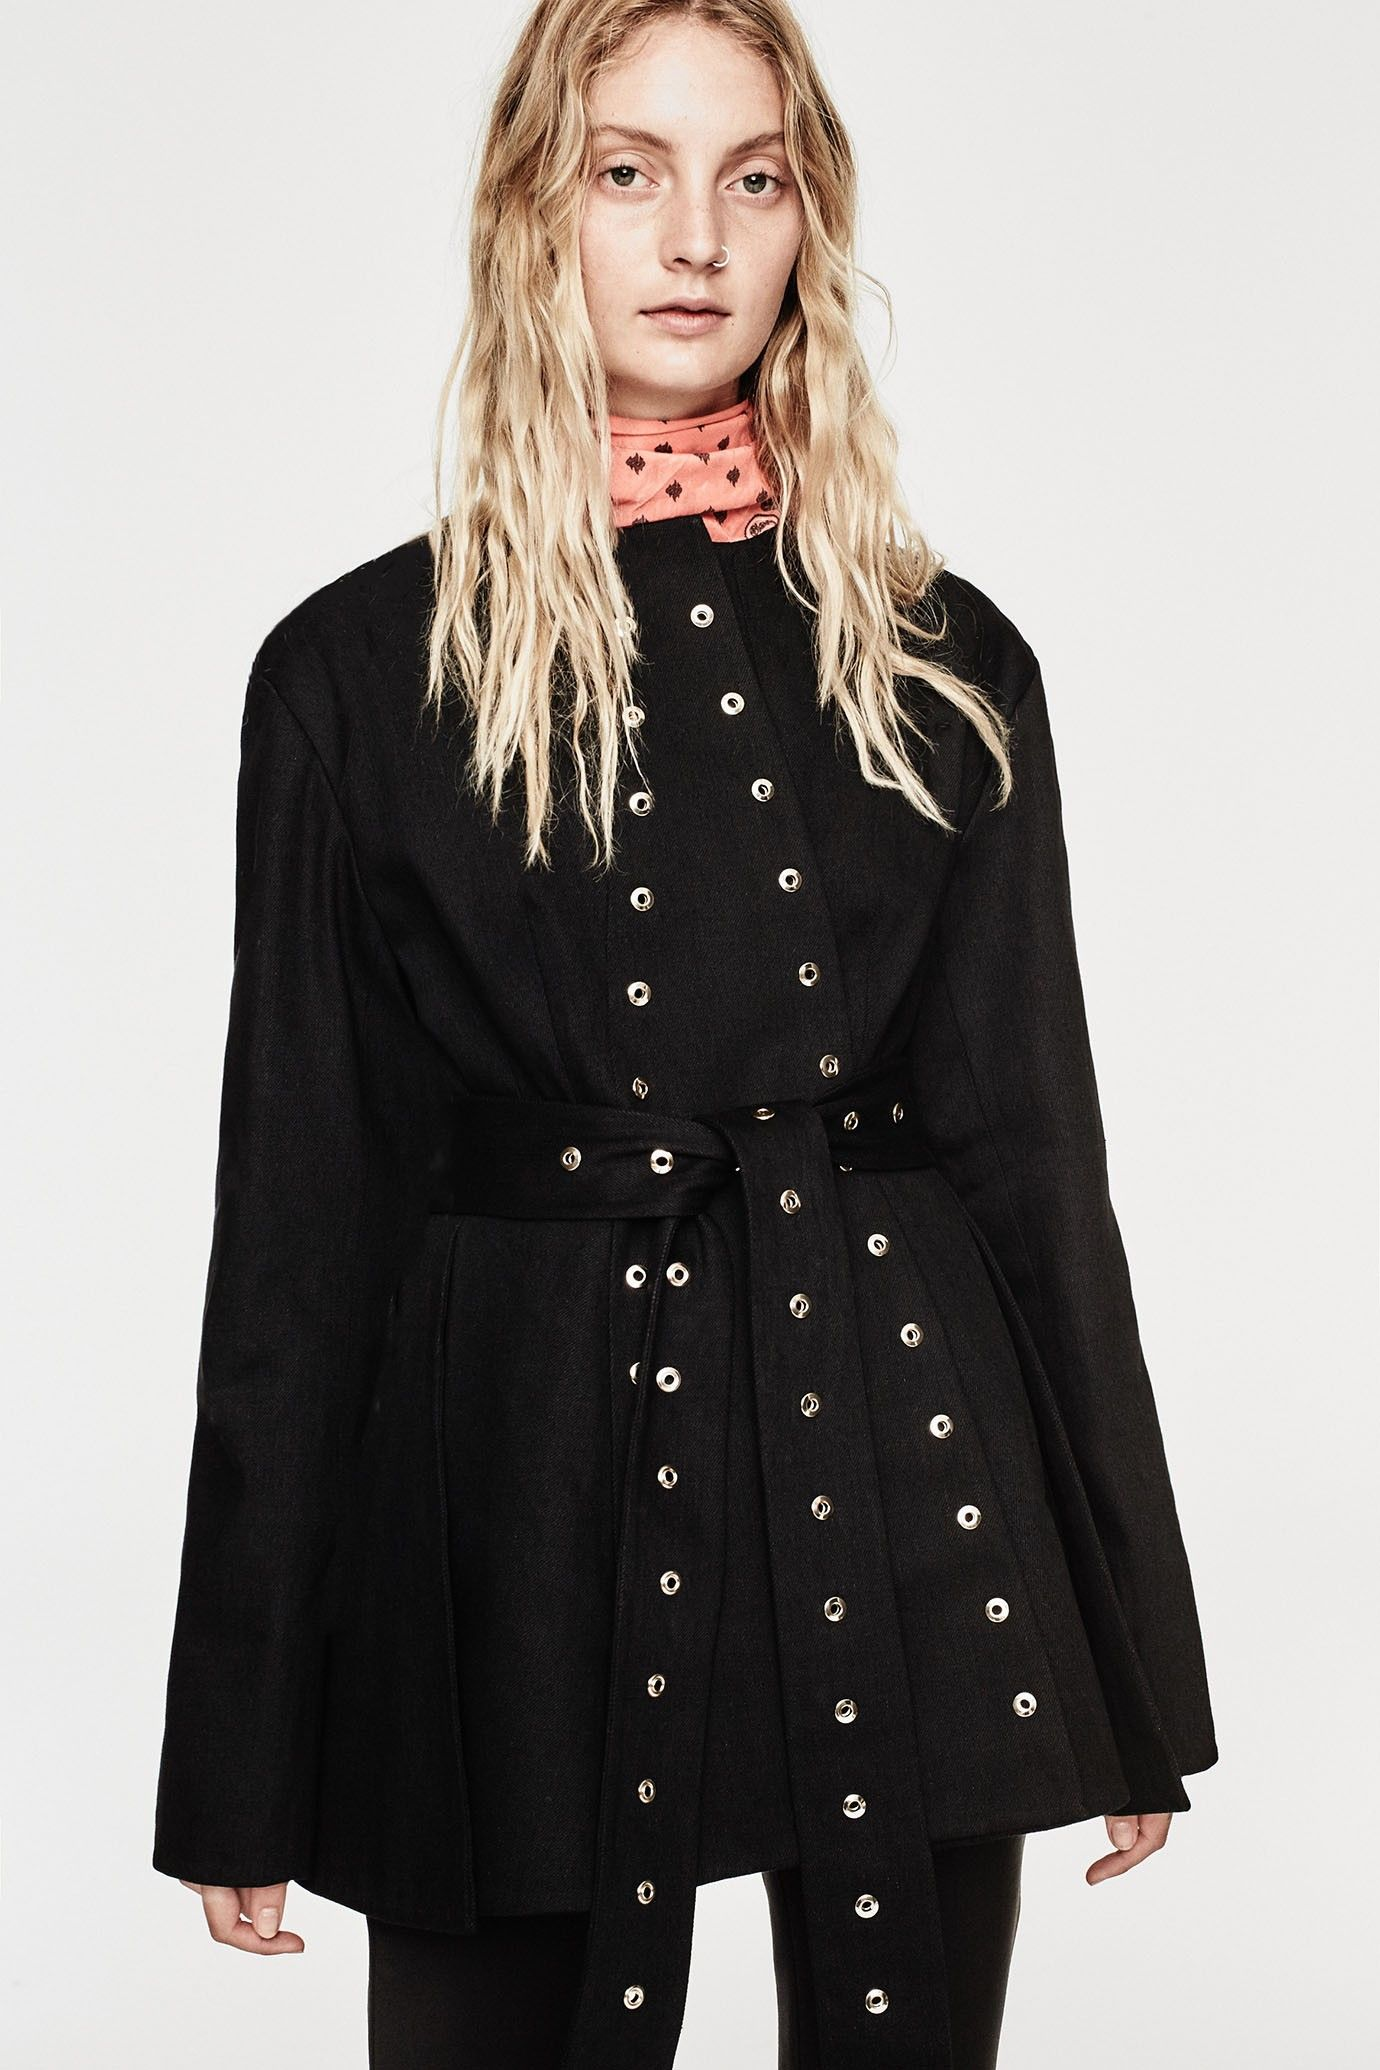 ELLERY - Cloudy Peak Dress Black - Luxury Fashion for Women - Shop Ready to Wear, Accessories, Shoes and Denim for Women